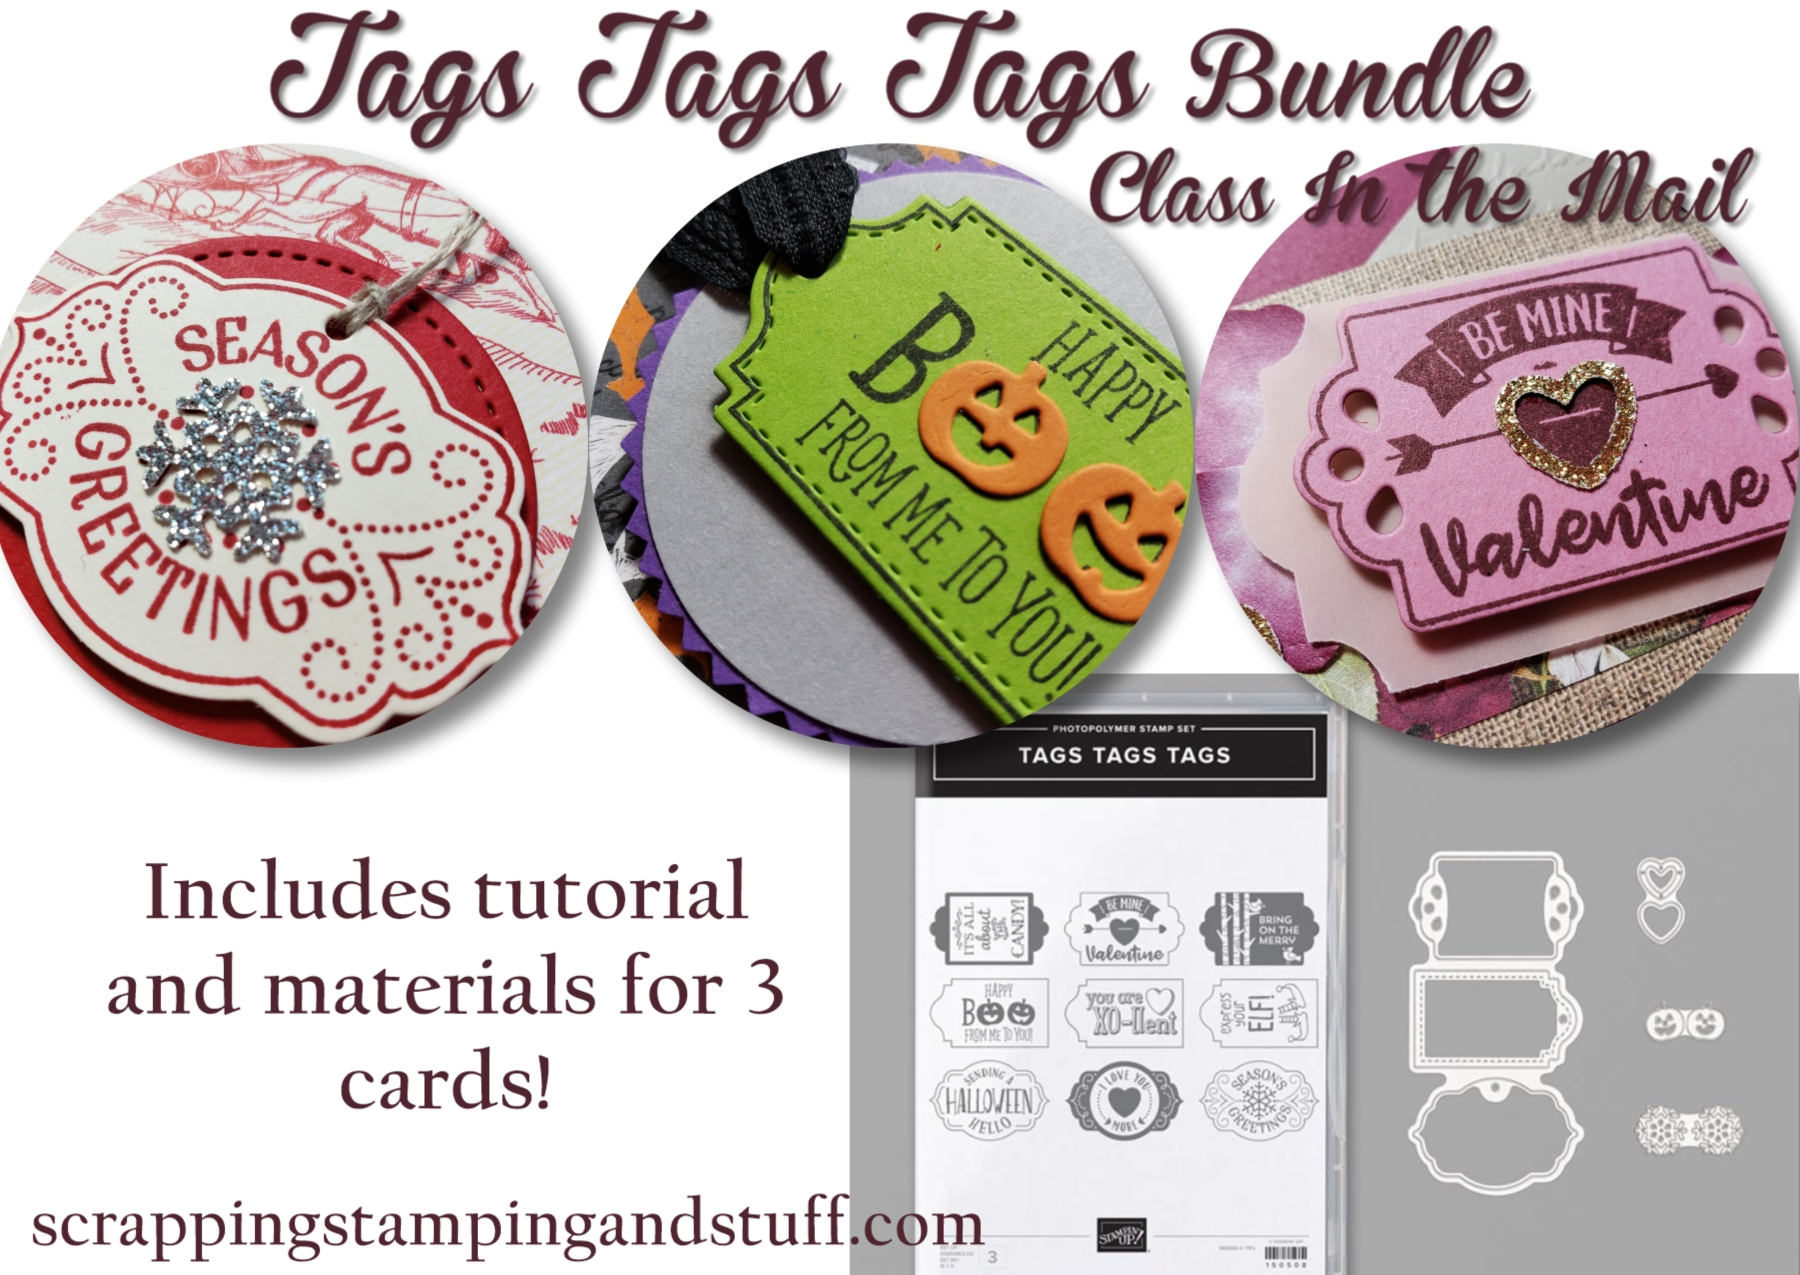 Tags Tags Tags Class Now Available!